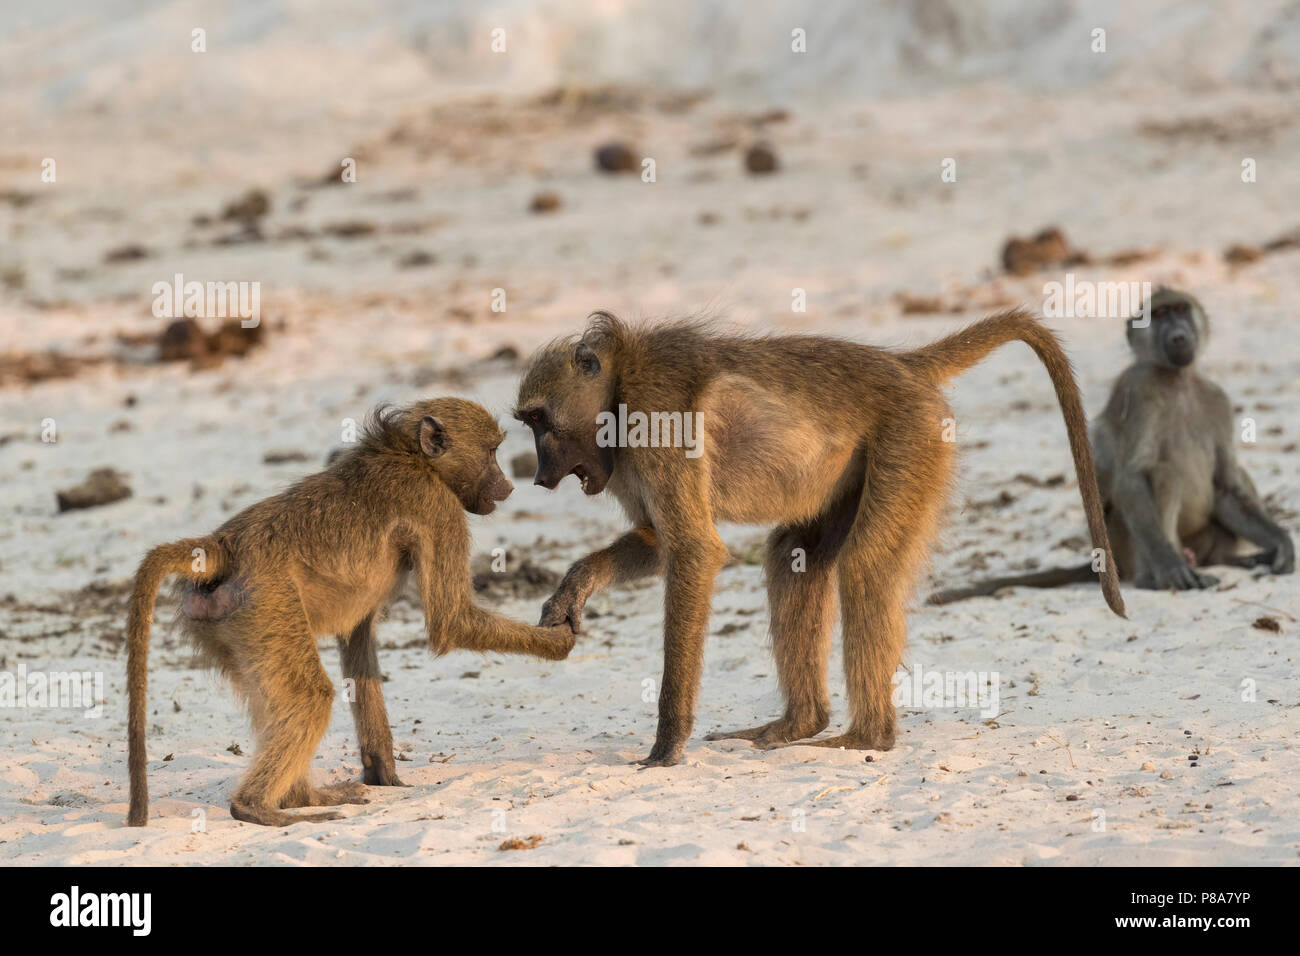 Chacma baboons (Papio ursinus) in social play, Chobe national park, Botswana, Africa - Stock Image